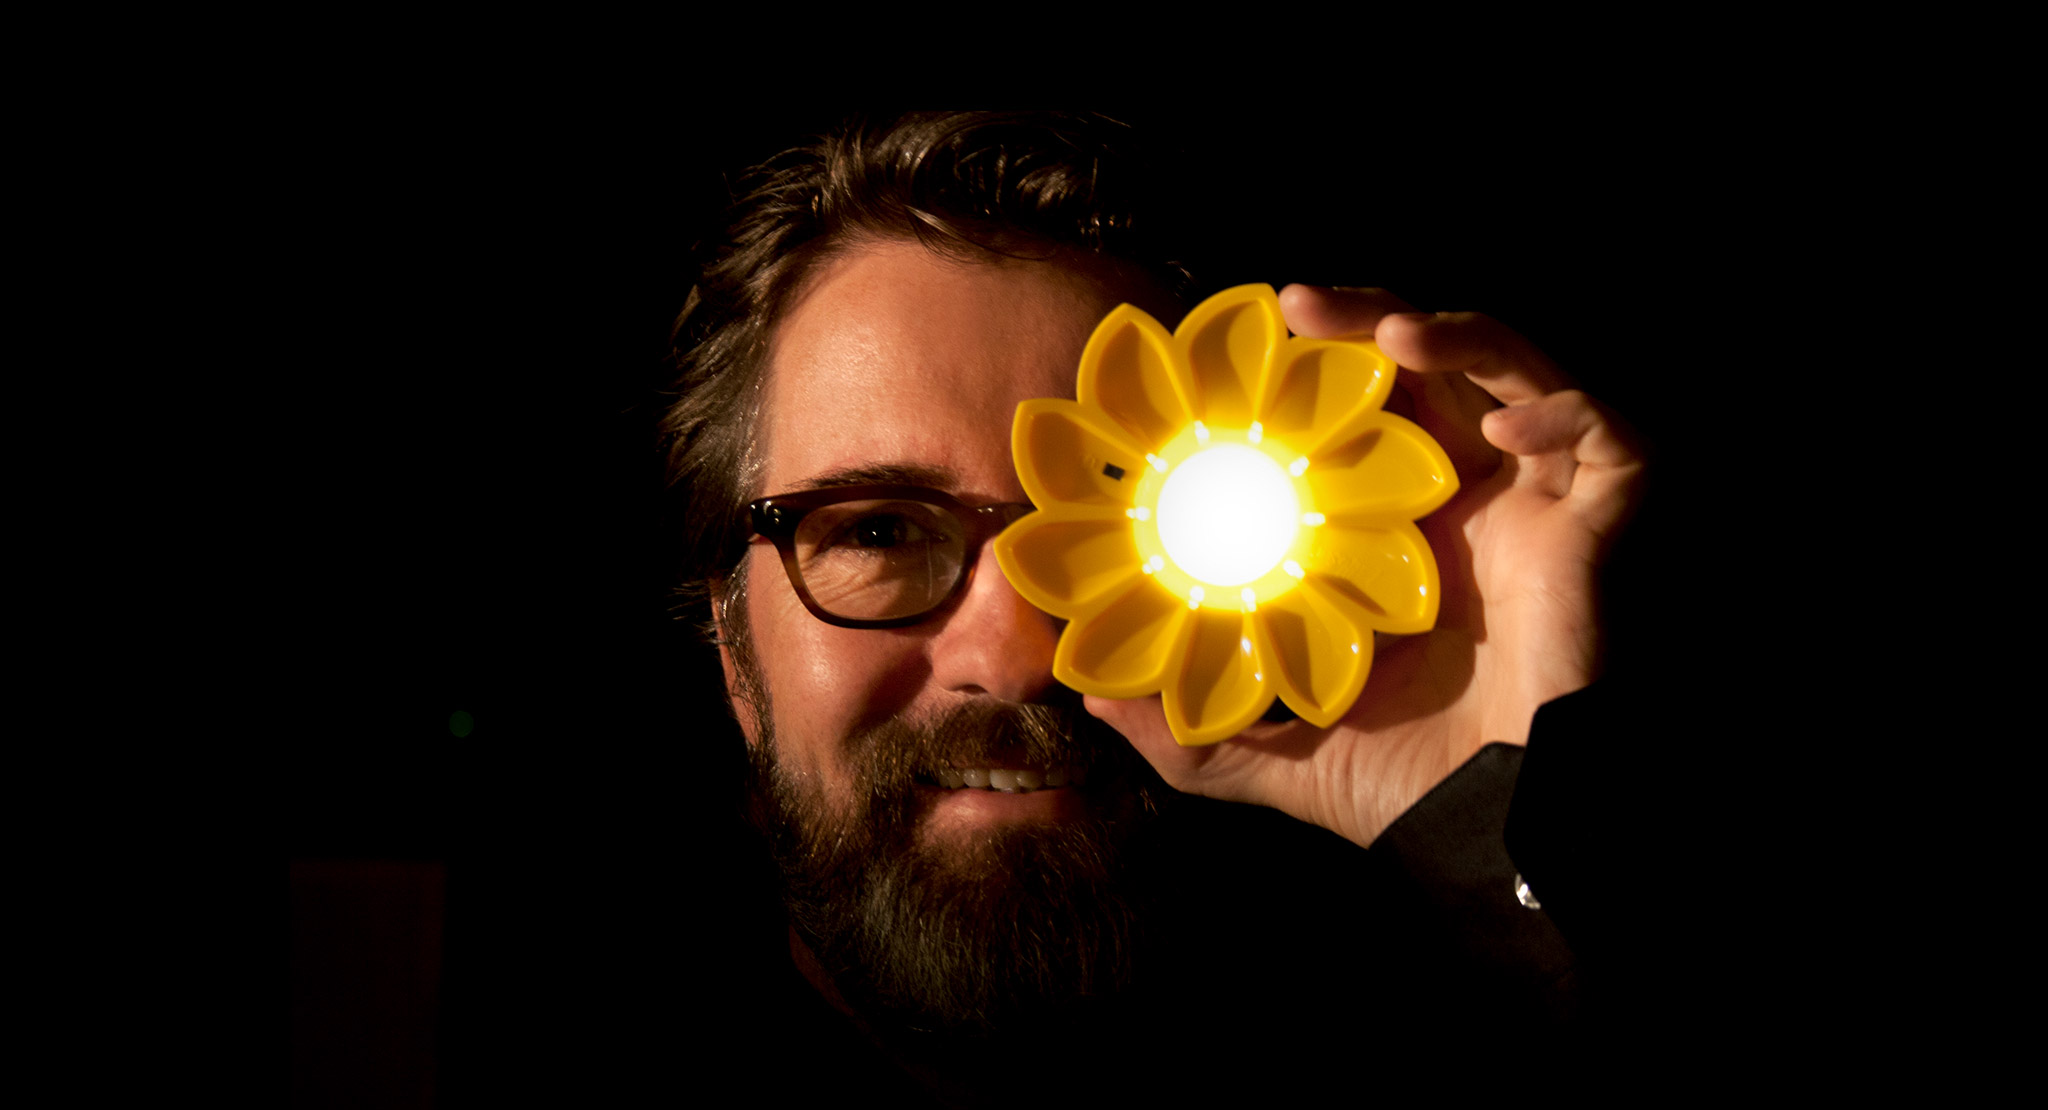 Olafur Eliasson is Changing the World One Sun at a Time